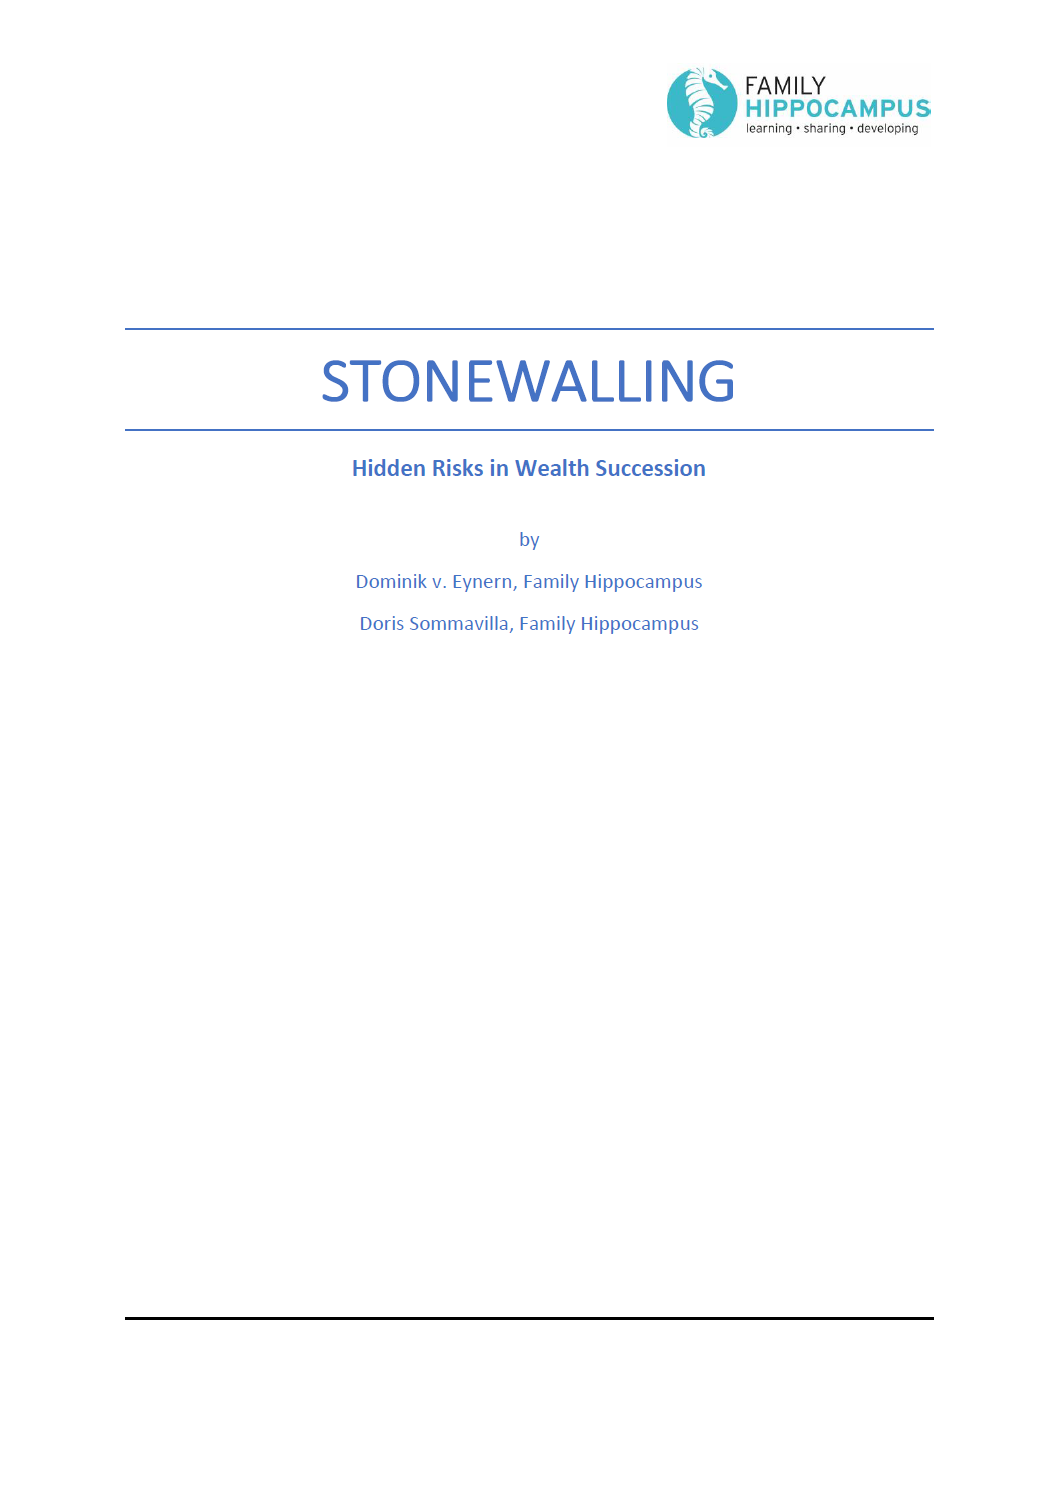 Stonewalling - Hidden Risks in Wealth Successions